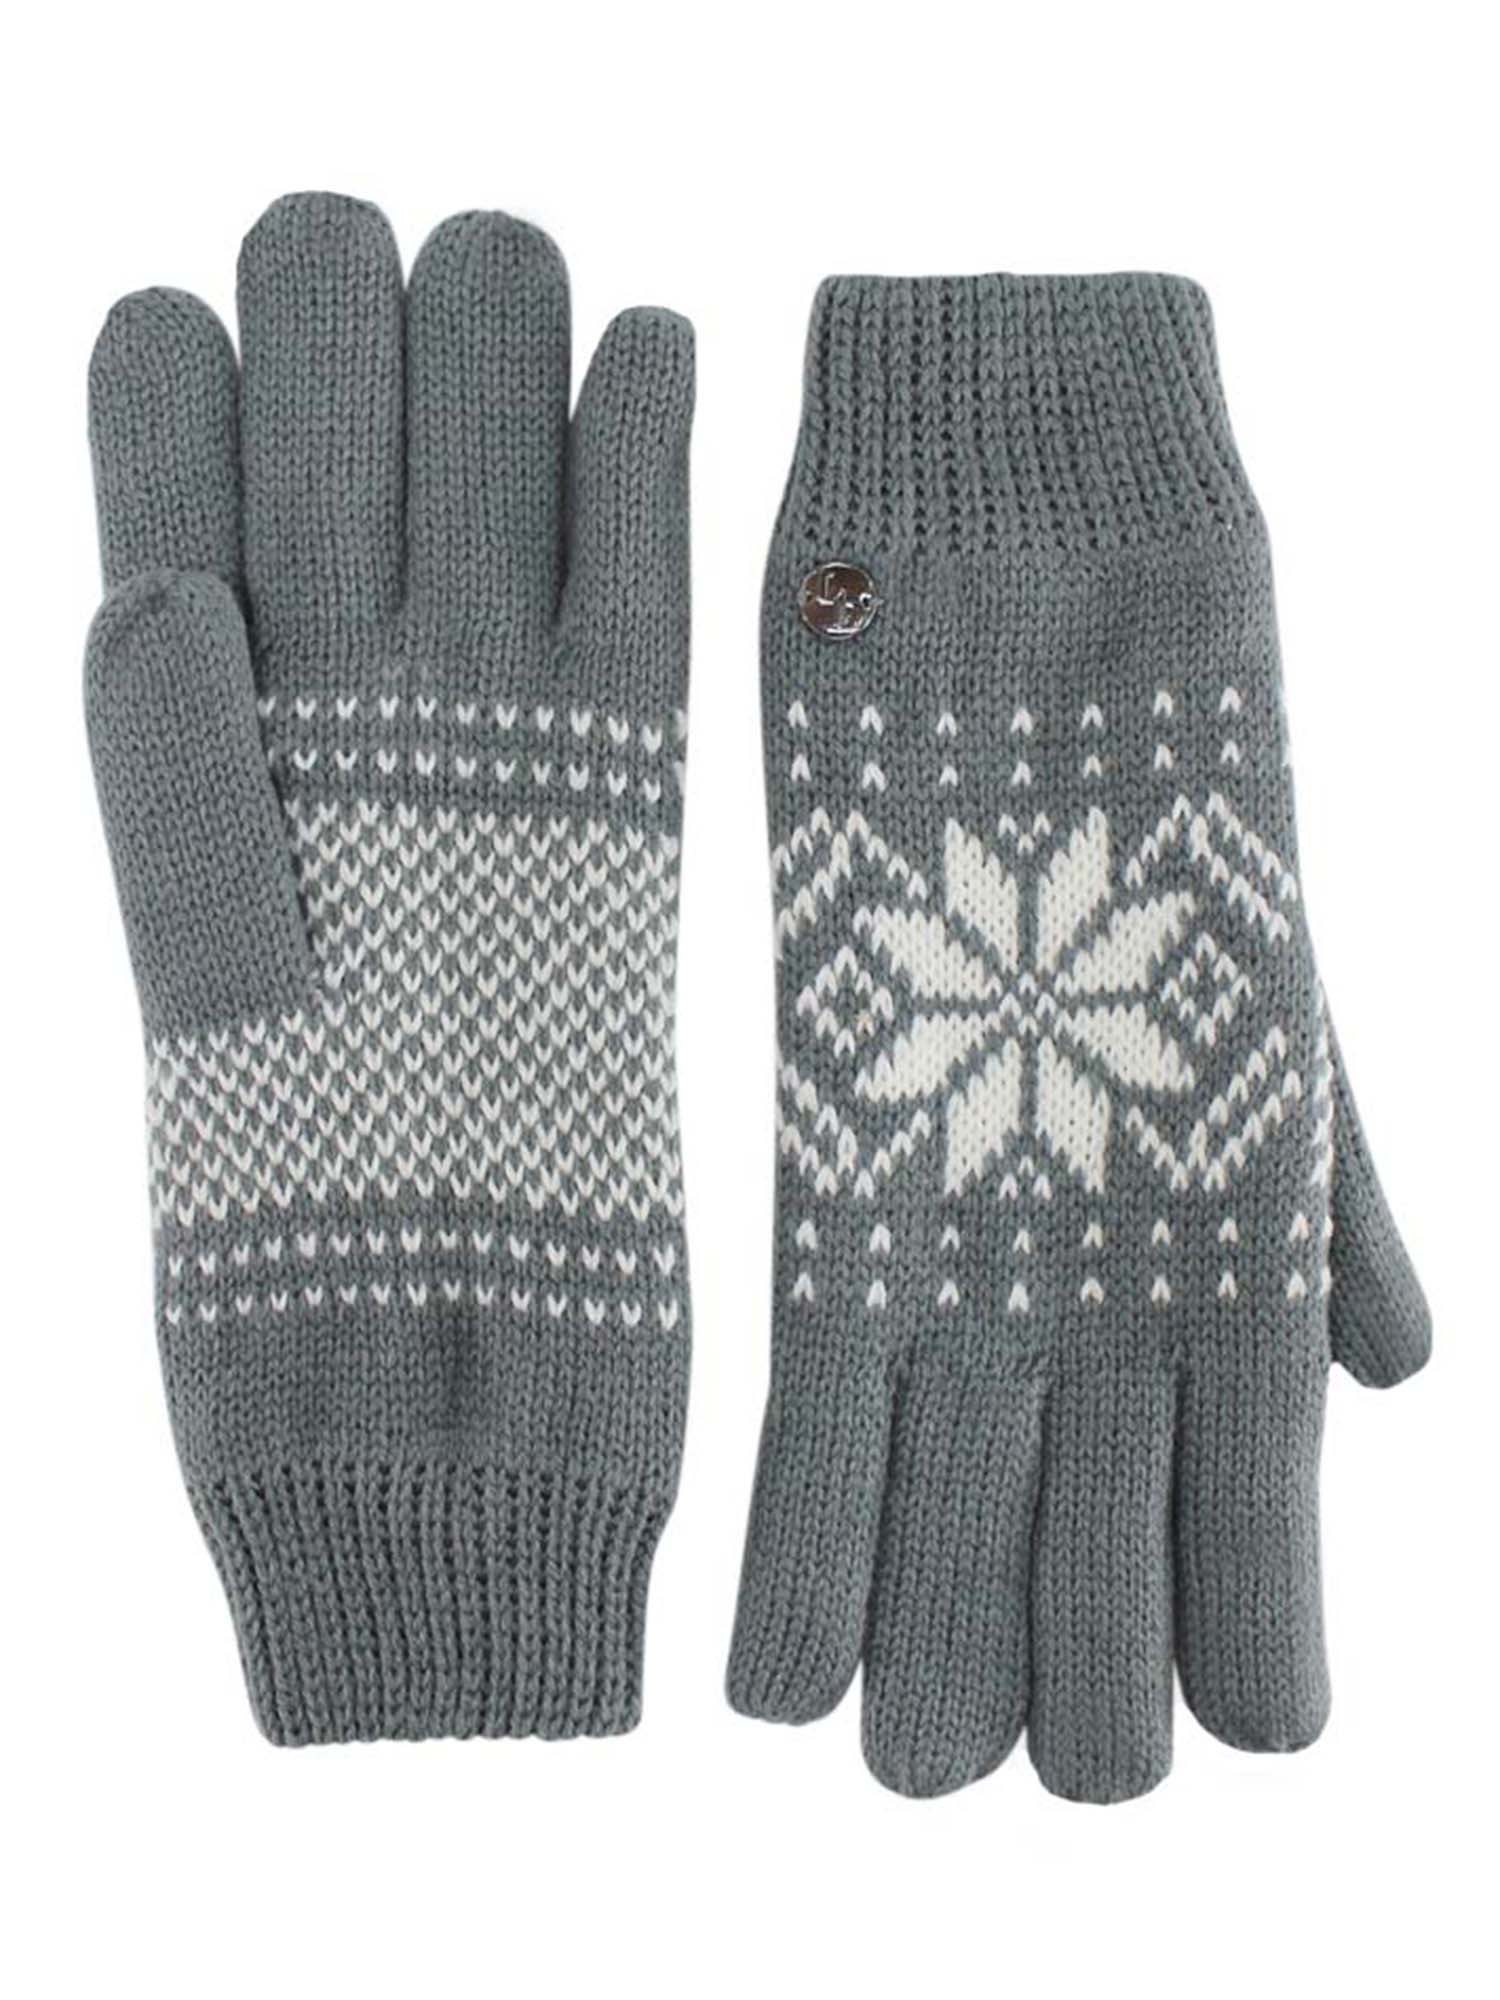 Men/'s Black and White Snowflake Print Thermal Gloves